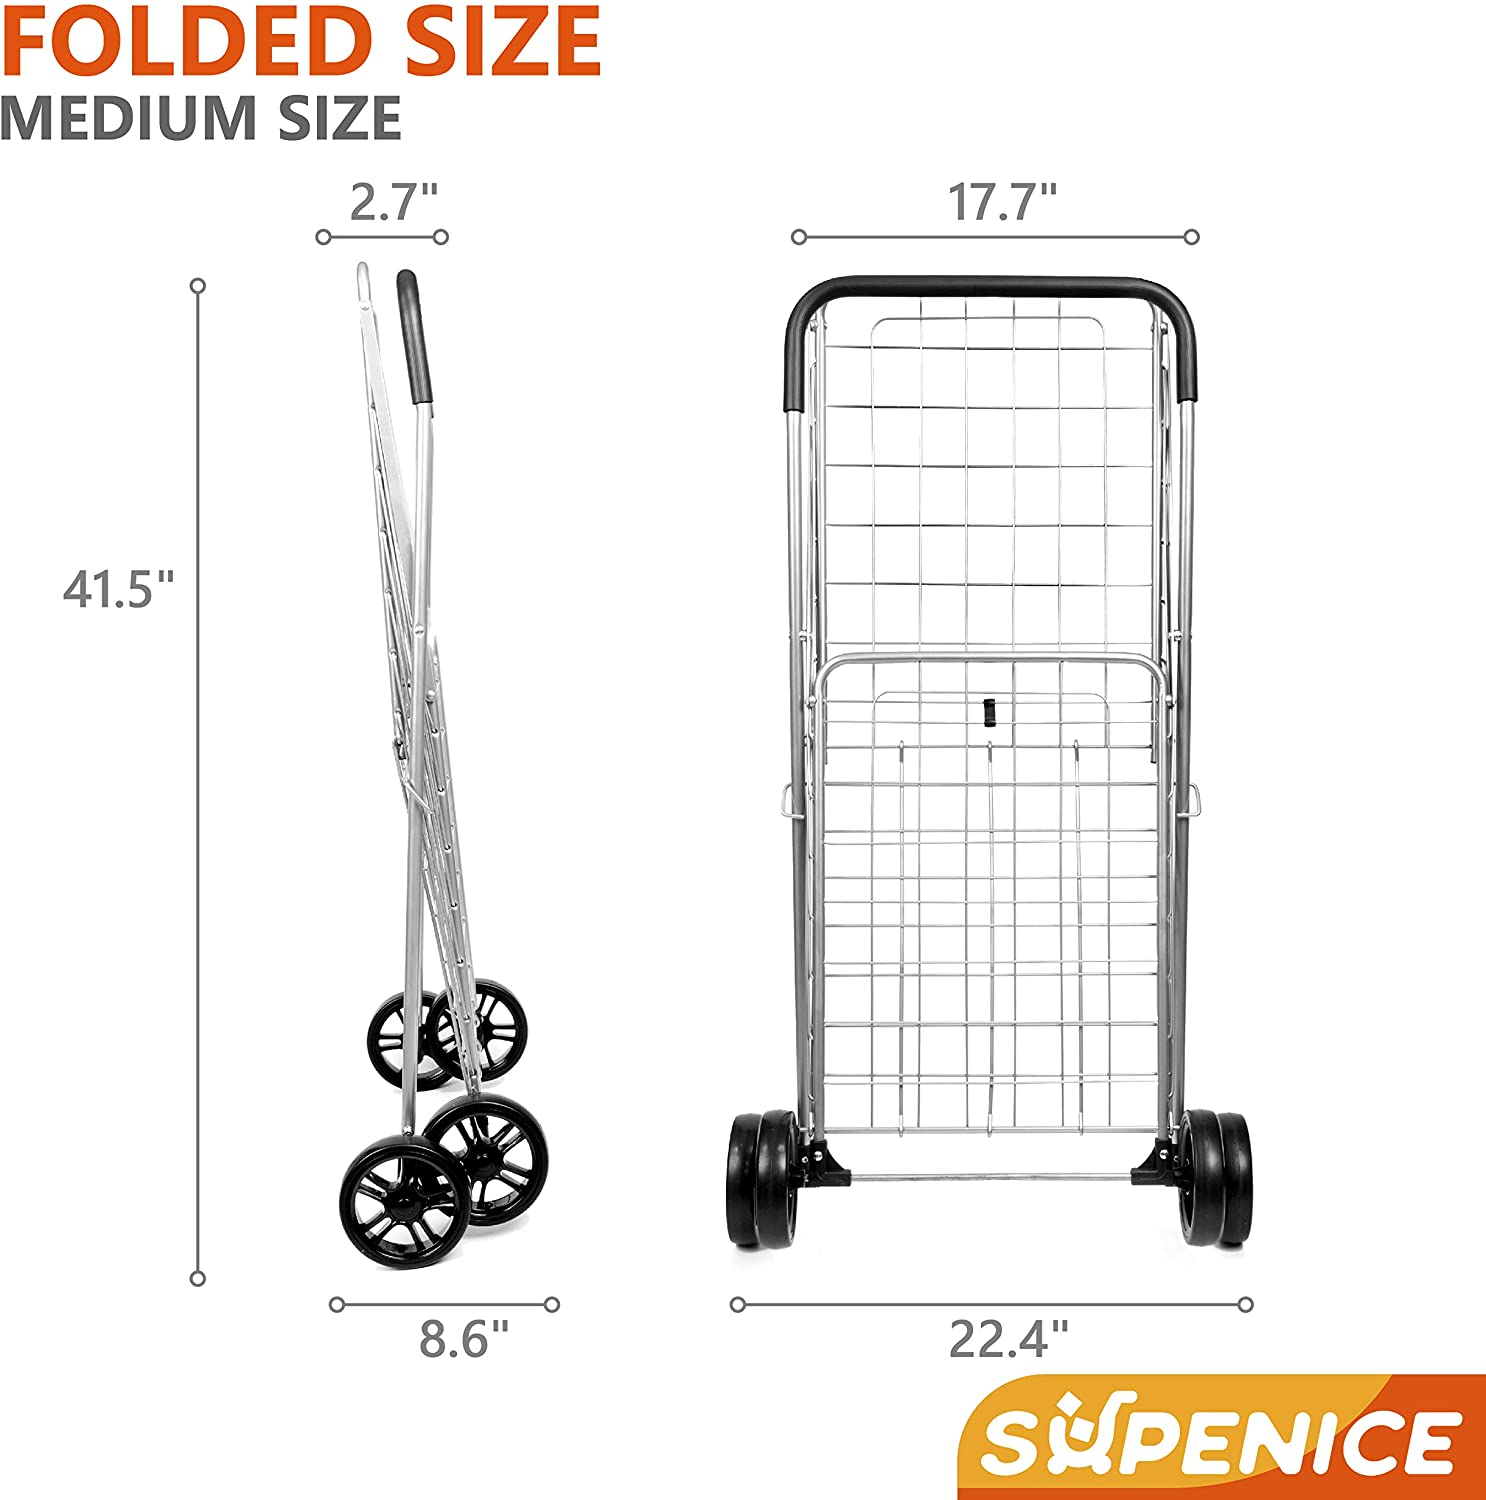 supenice Grocery Utility Shopping Cart - Deluxe Utility Cart with Oversized Basket and Tool Free Installation Light Weight Folding Cart with Wide Cushion Handle Bar for Laundry Book Luggage Travel: Home & Kitchen